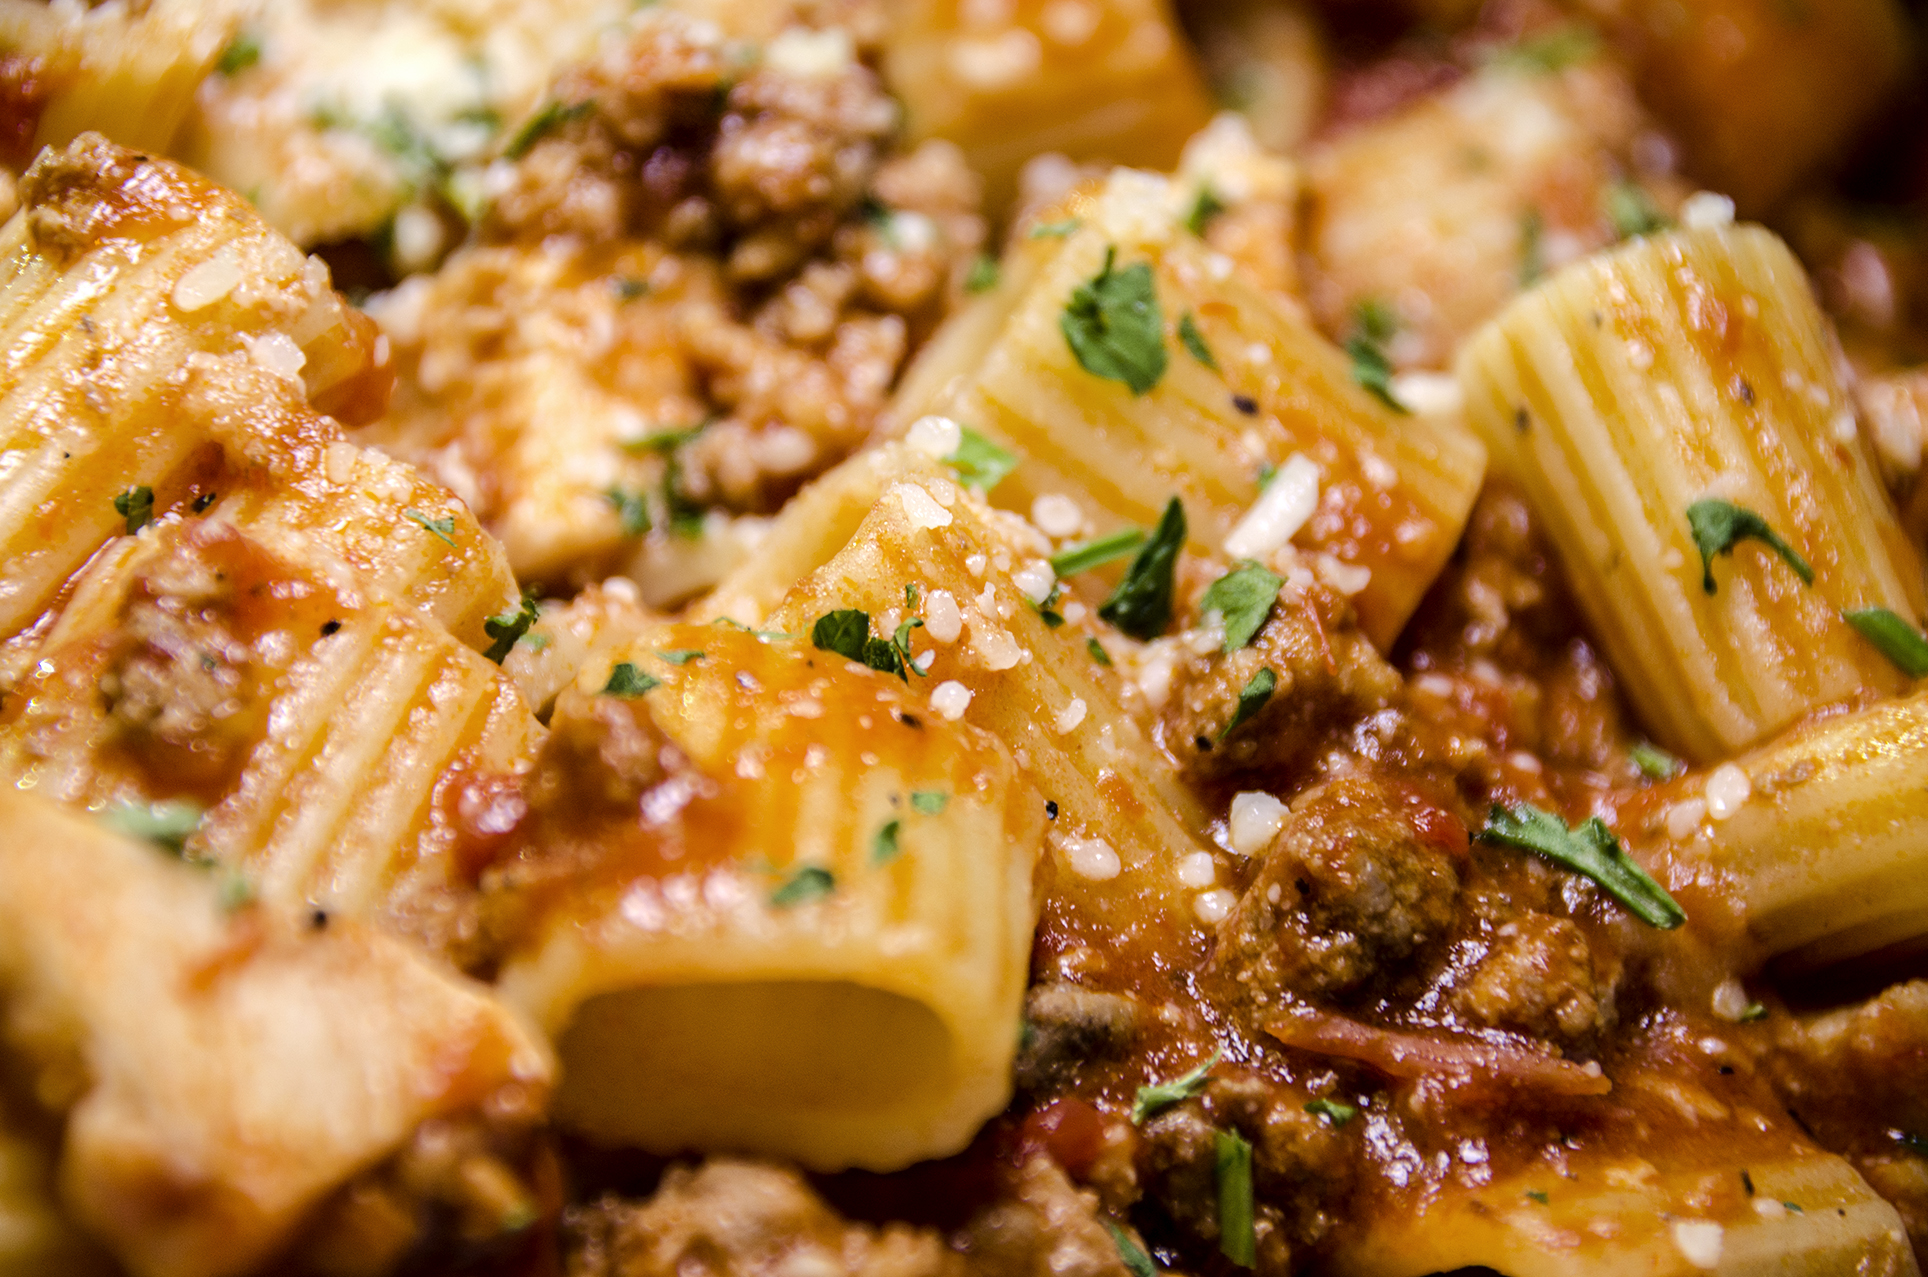 Some of the best pasta I've seen around..